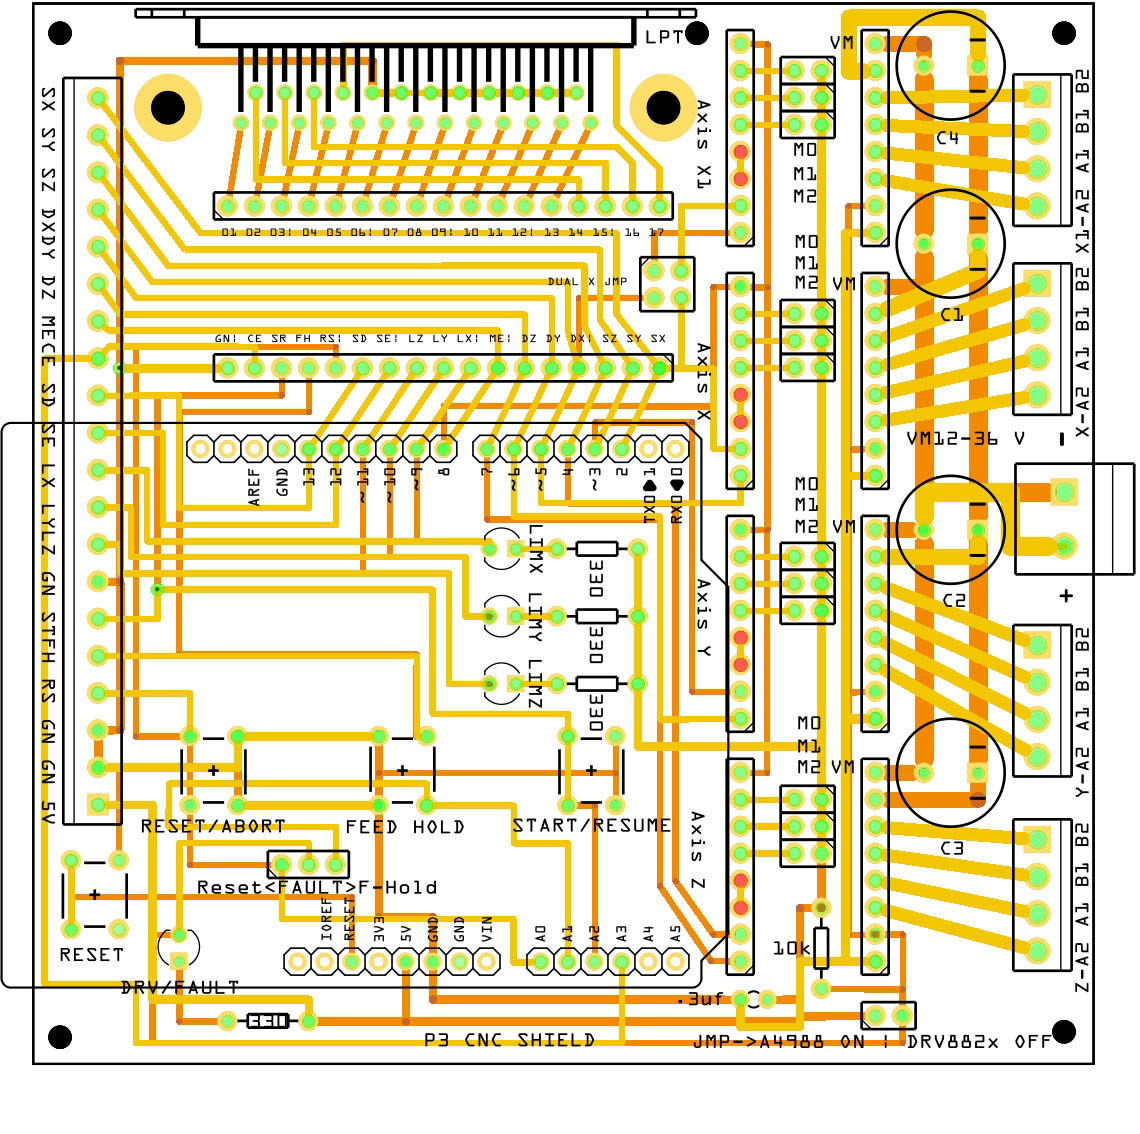 CNCshield arduino mega 2650 pinout question? � issue 390 � grbl grbl � github ciclop 3d scanner arduino uno/cnc shield v3 wiring diagram at reclaimingppi.co